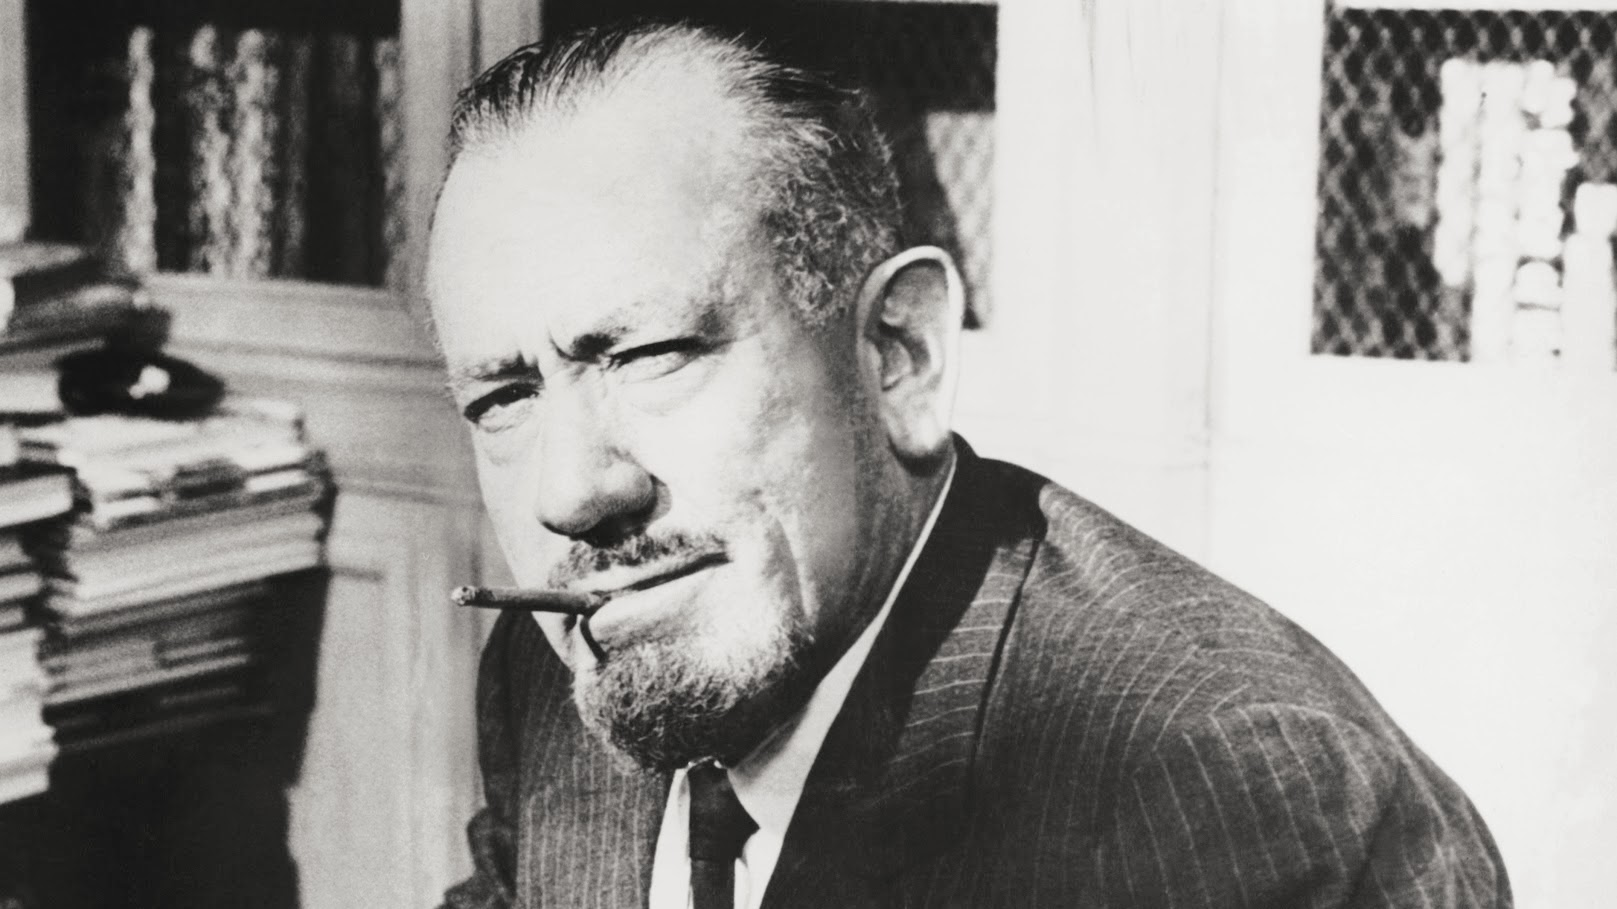 a biography of john ernst steinbeck John ernst steinbeck, jr was an american writer and widely known for receiving  the-pulitzer prize for  he was born in salinas california on february 27, 1902.